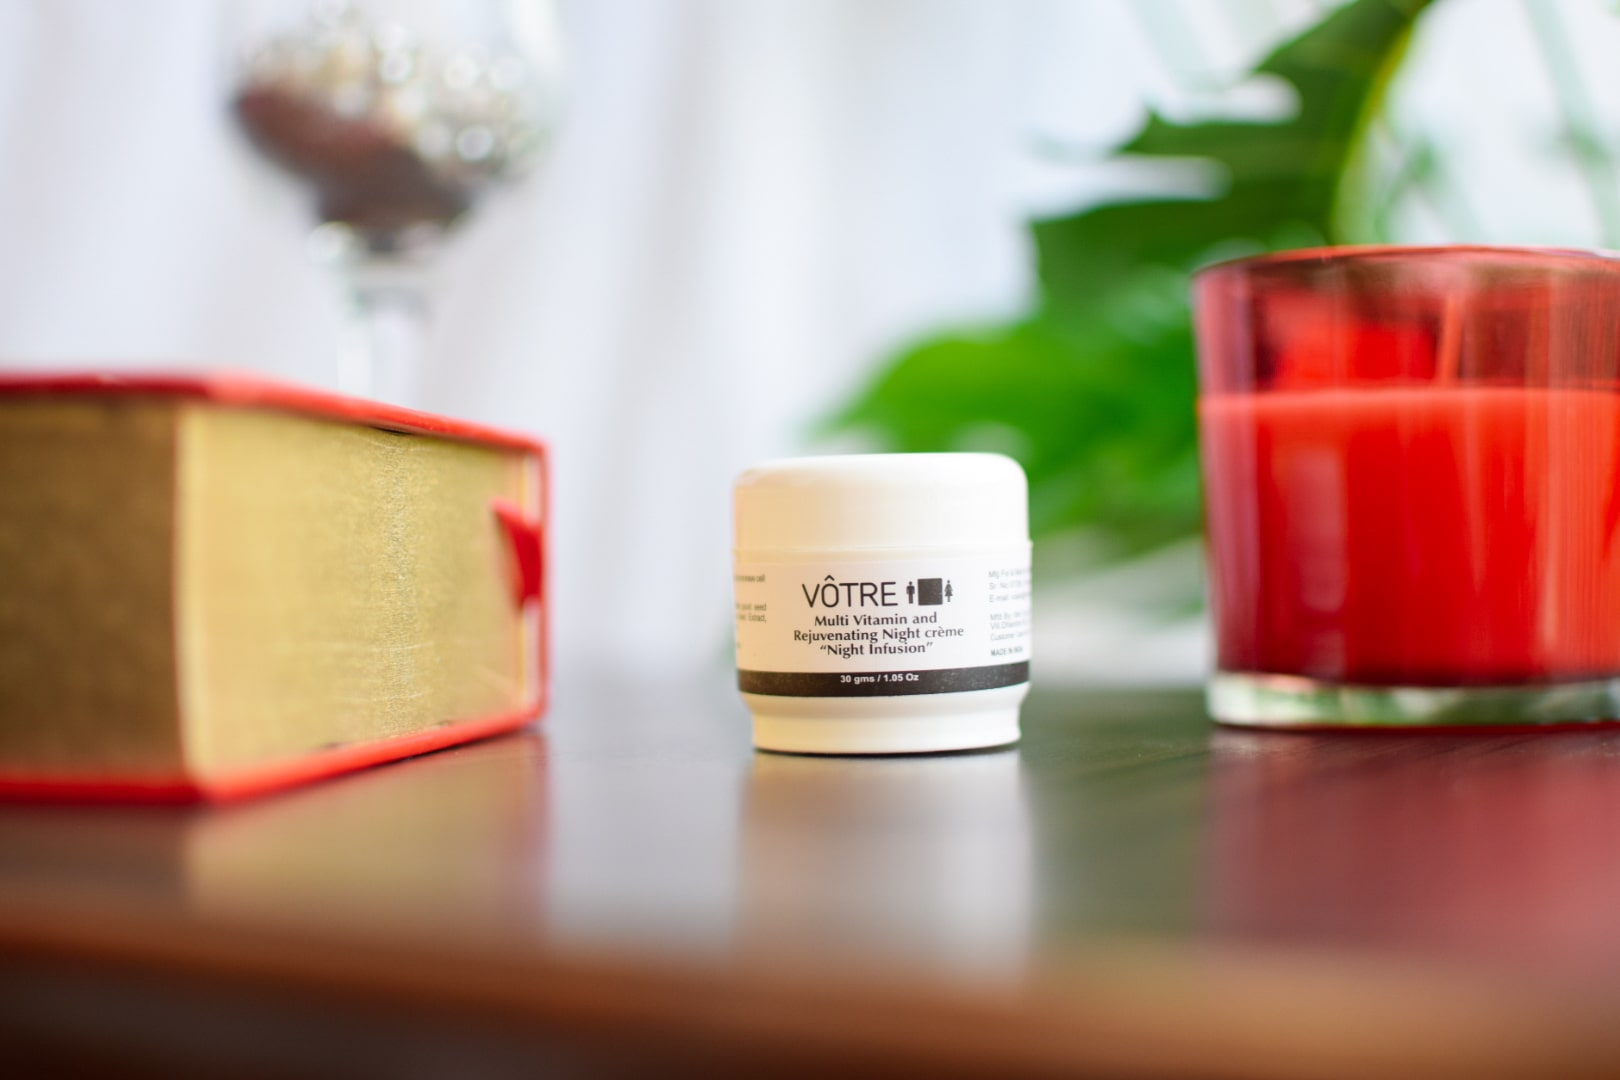 Votre Multi Vitamin and Rejuvenating Night Crème